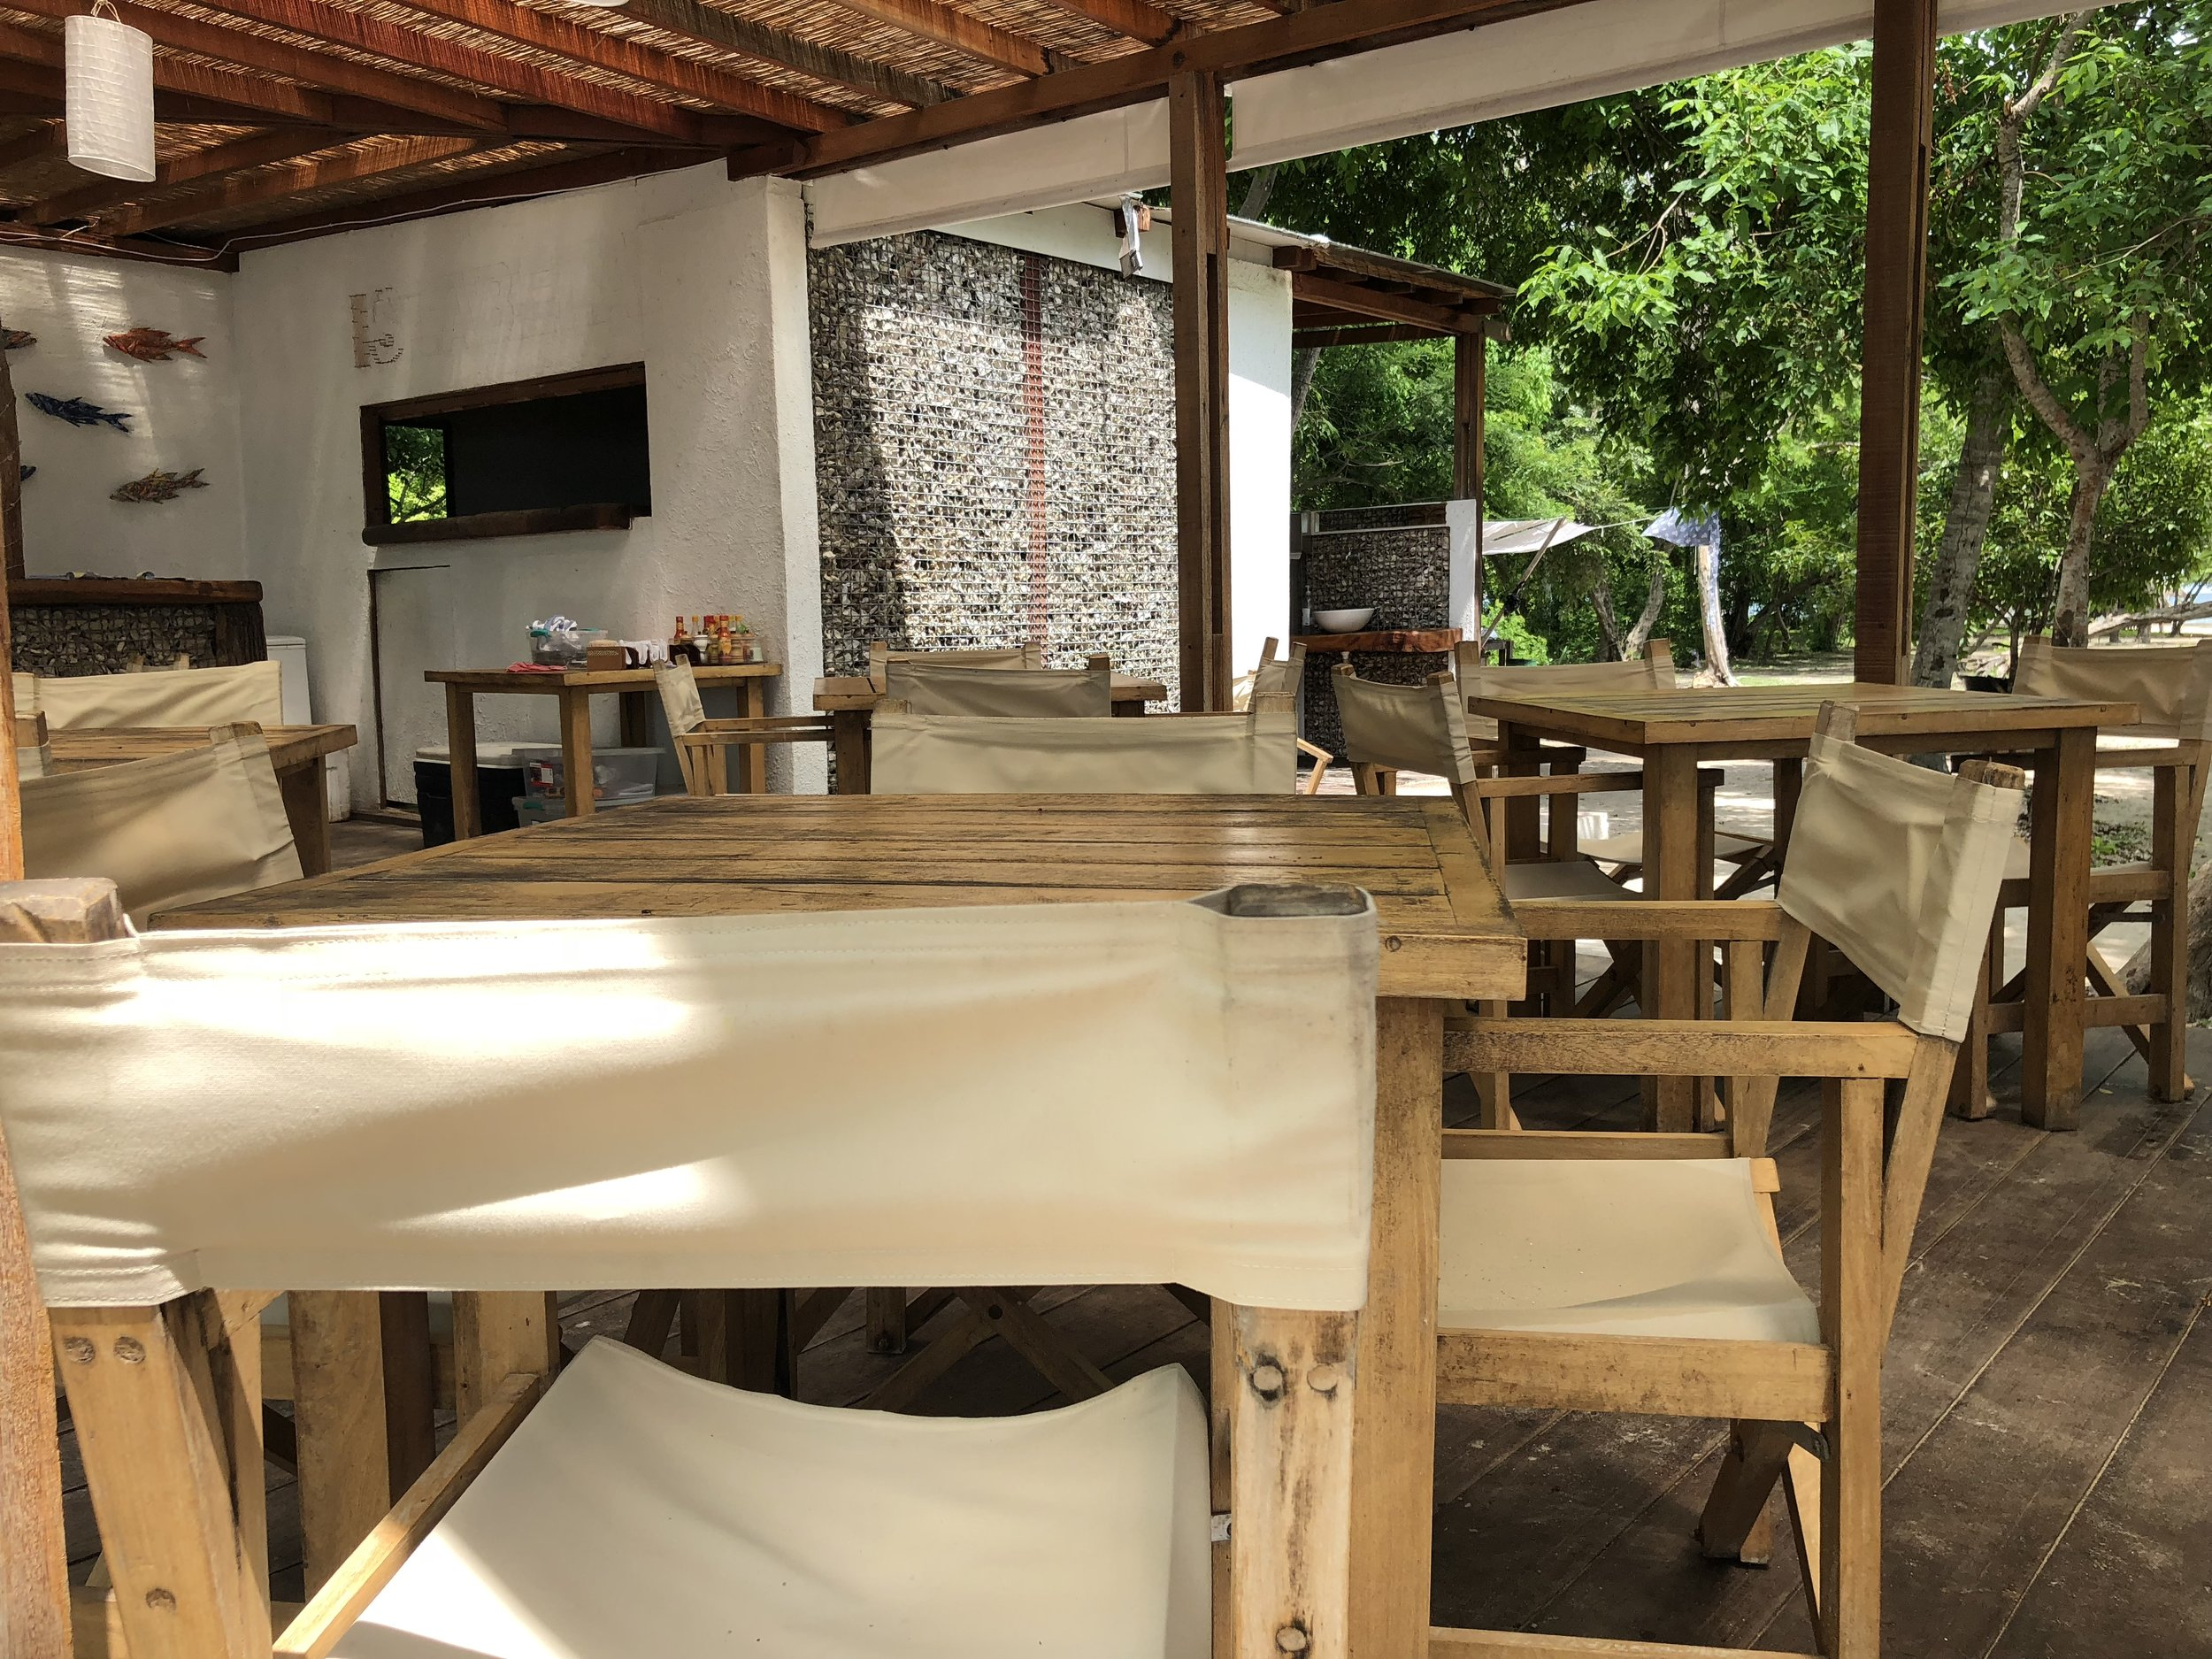 Dining area of Islabela. You choose whether you would like to eat lunch at noon or 12:30pm.